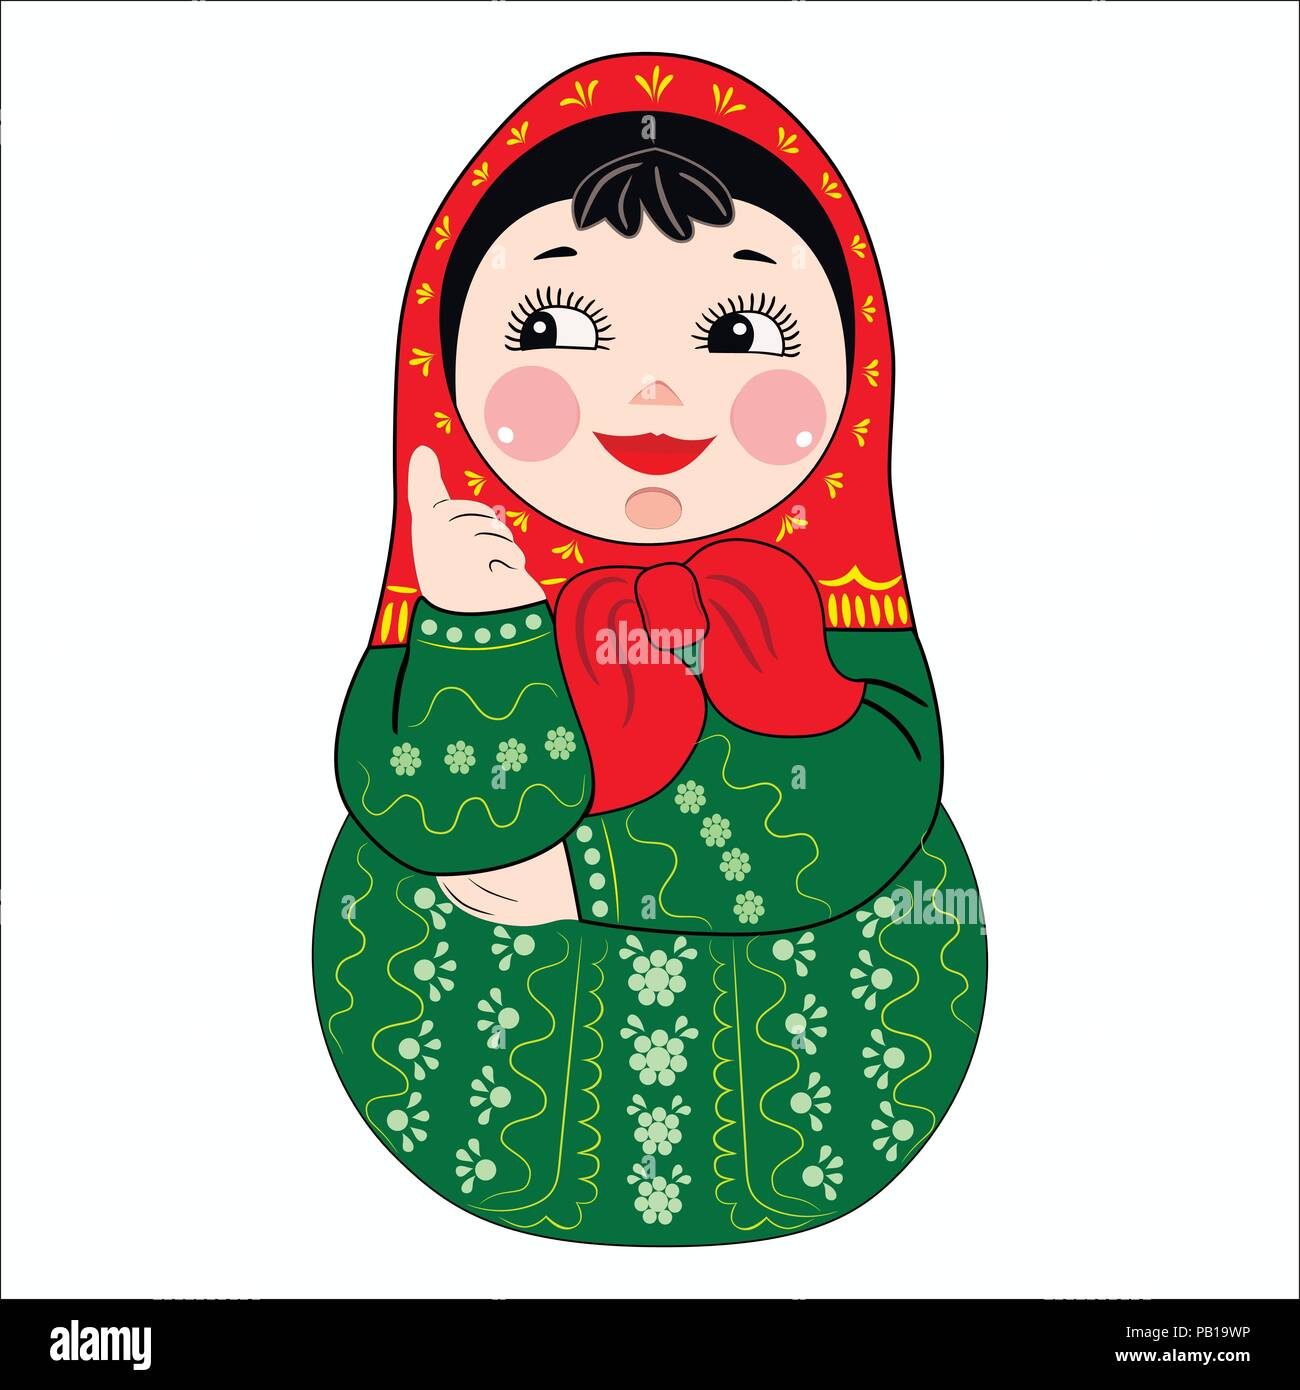 Retro Russian Doll Matryoshka Painted At Khokhloma Style Vector Linear And  Colored Pictures Stock Illustration - Download Image Now - iStock